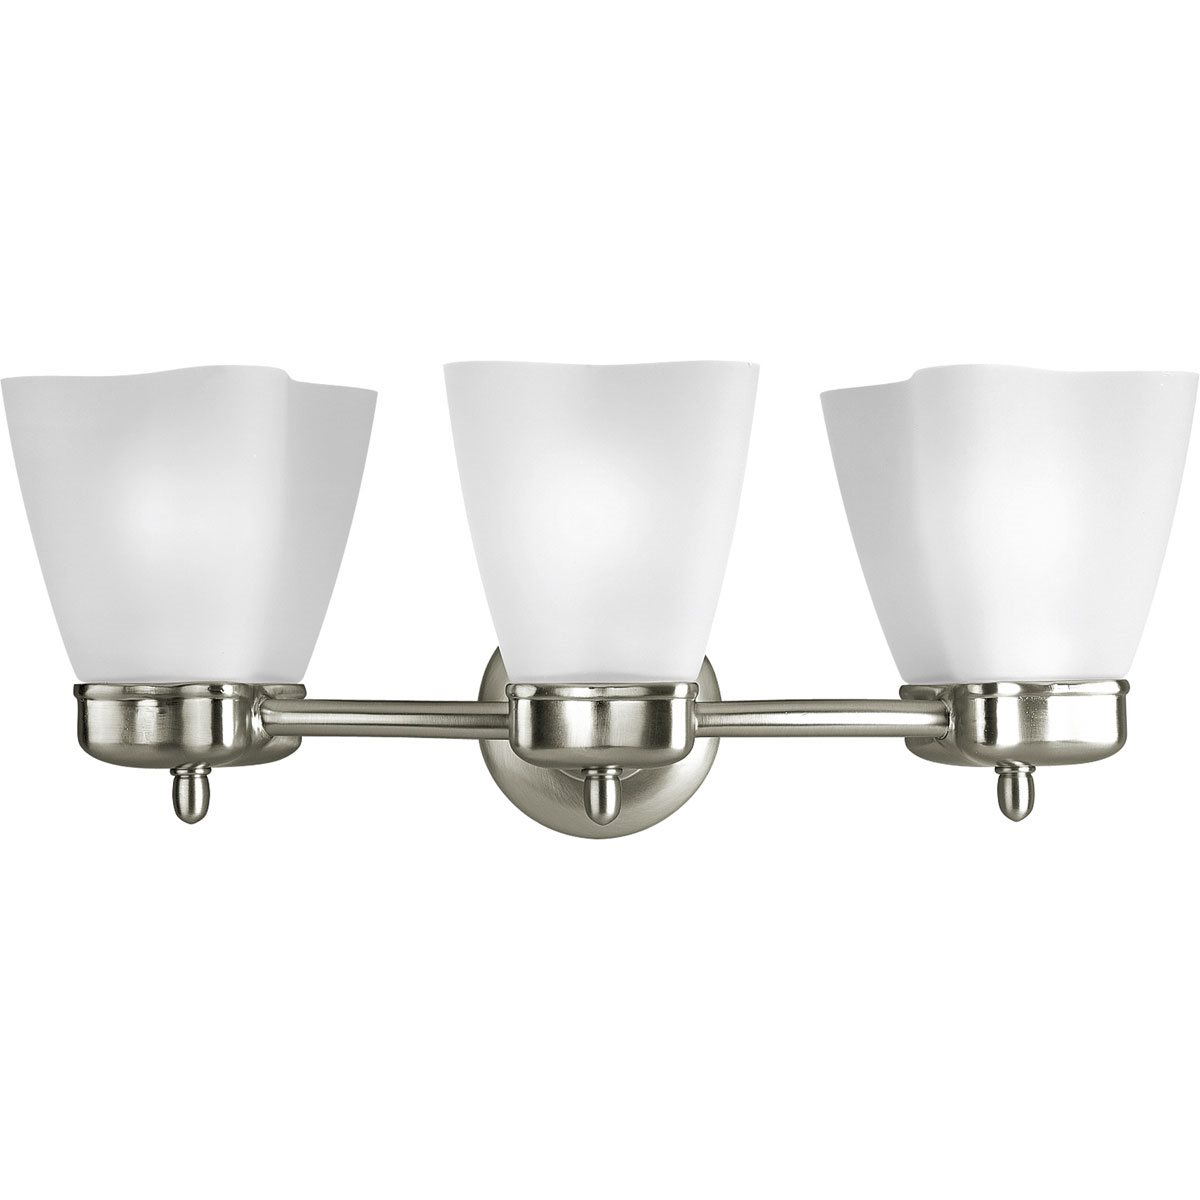 Delta P3242-09 Michael Graves Modern / Contemporary Bathroom / Vanity Light PG-P3242-09